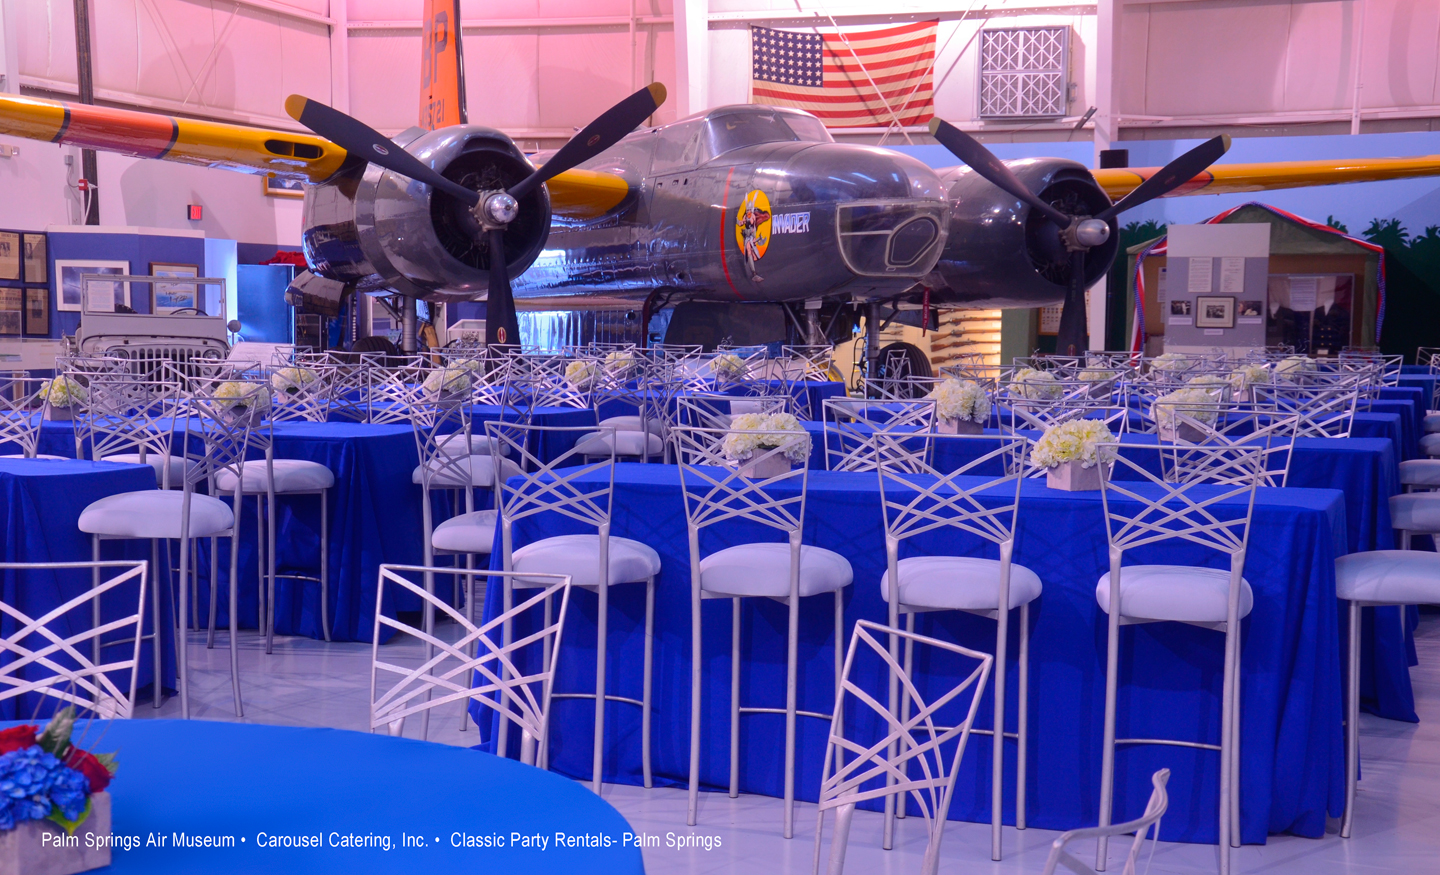 Bmw Palm Springs >> Corporate Events - 2011 - Palm Springs Air Museum, Palm Springs (Carousel Catering Inc., Classic ...